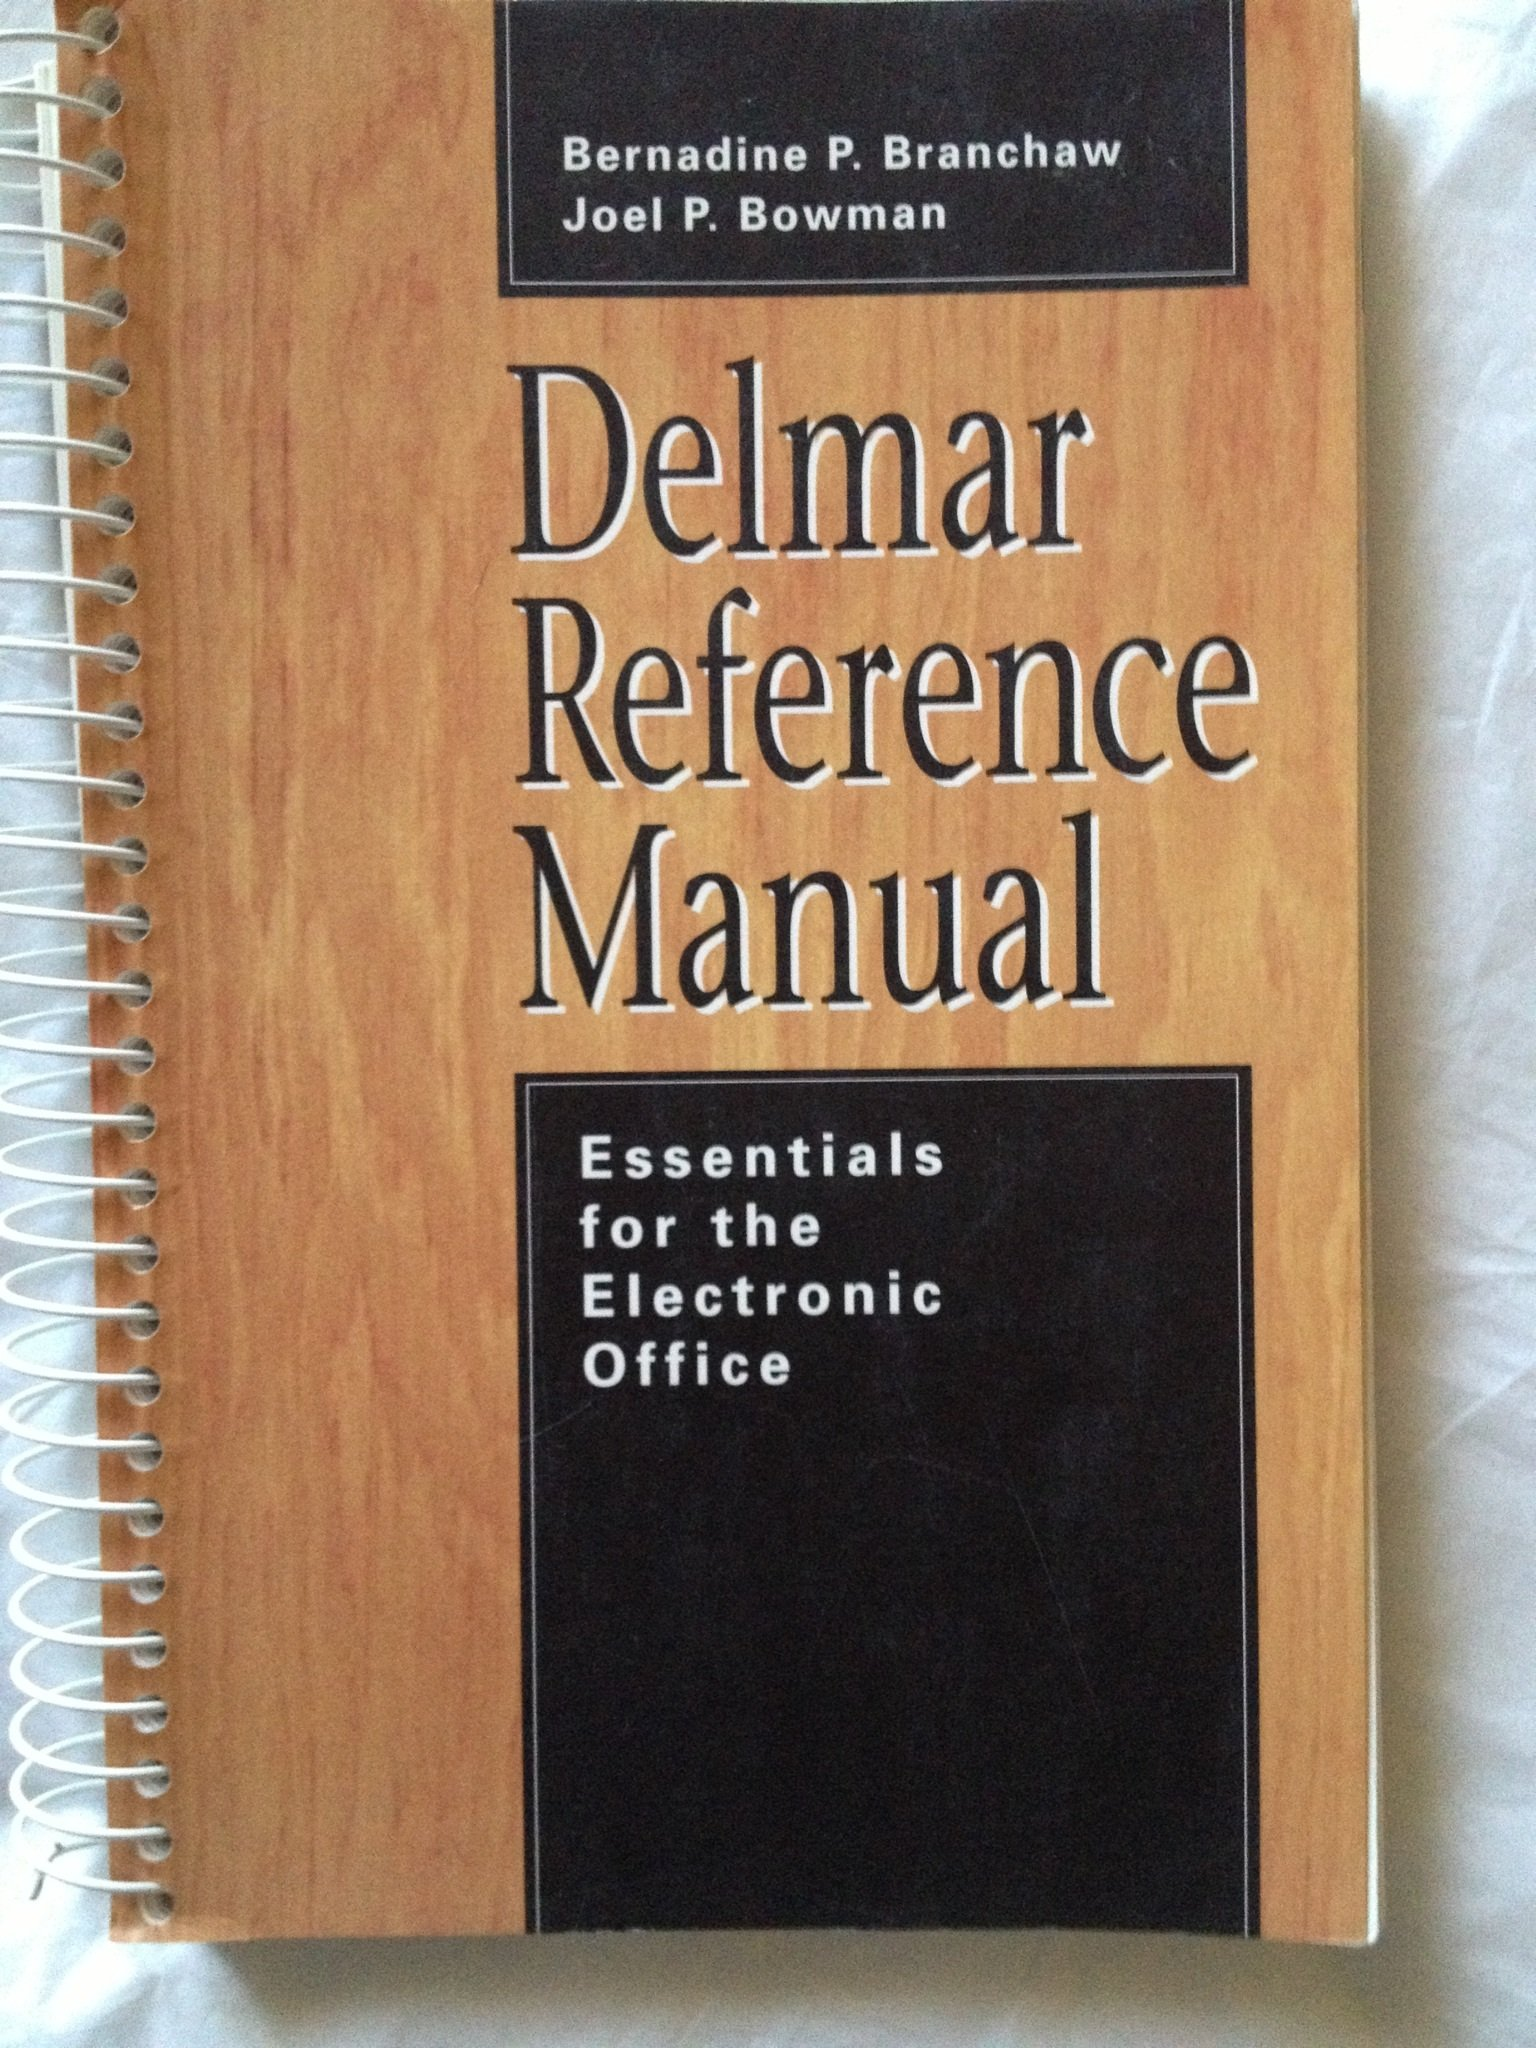 Buy Delmar Reference Manual: Essentials for the Electronic Office Book  Online at Low Prices in India | Delmar Reference Manual: Essentials for the  ...